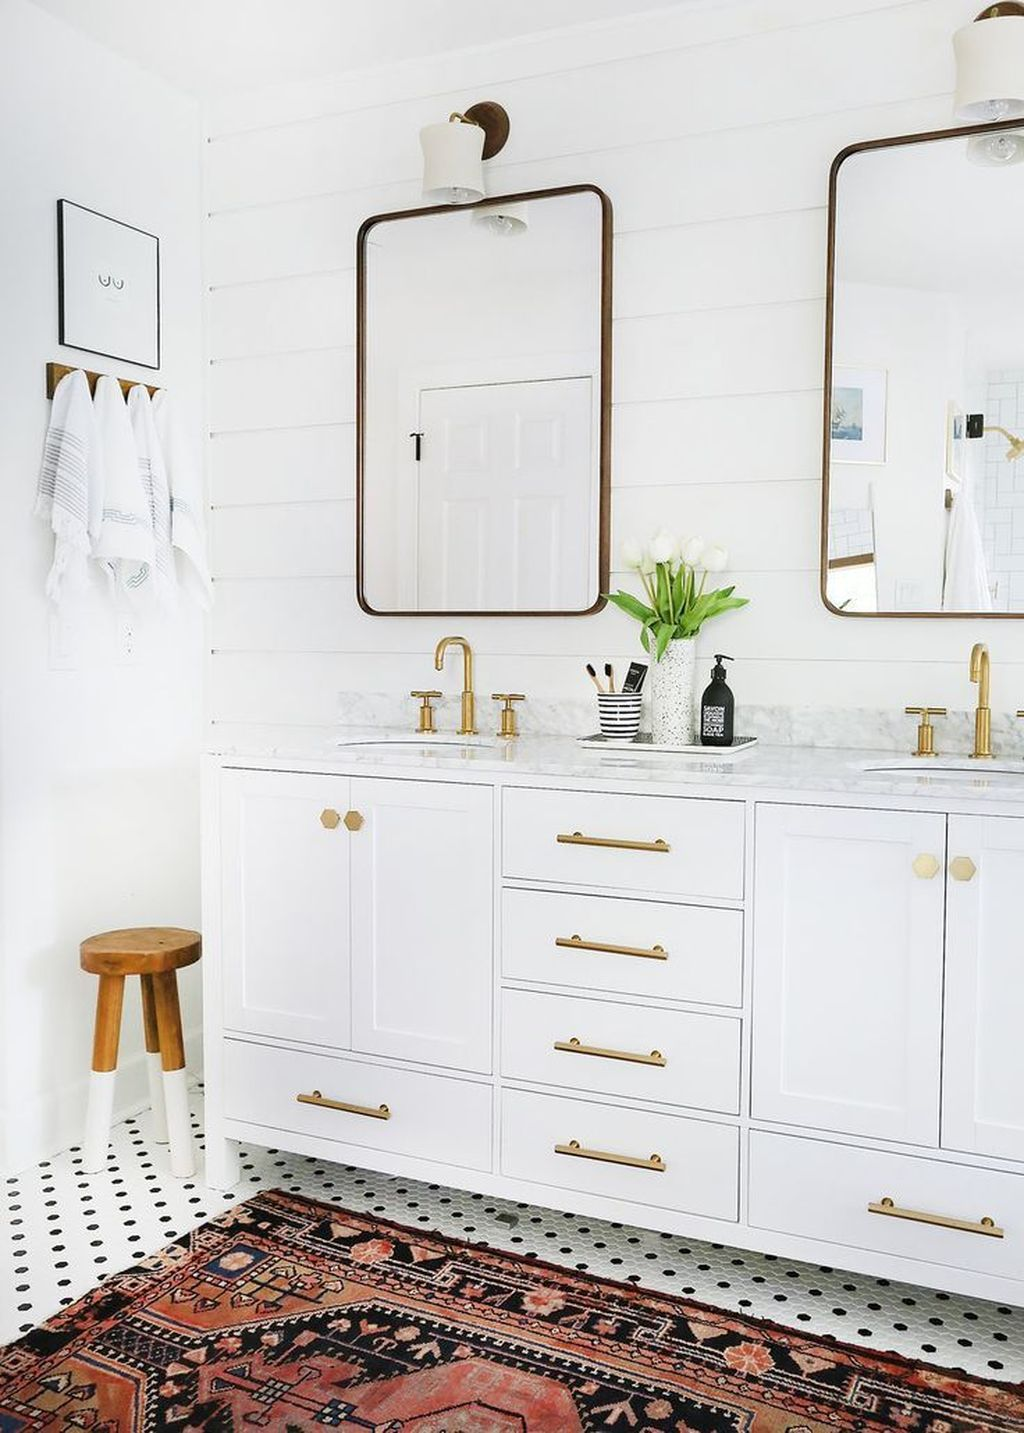 20 Totally Inspiring Bathroom Rug Design To Make It Better